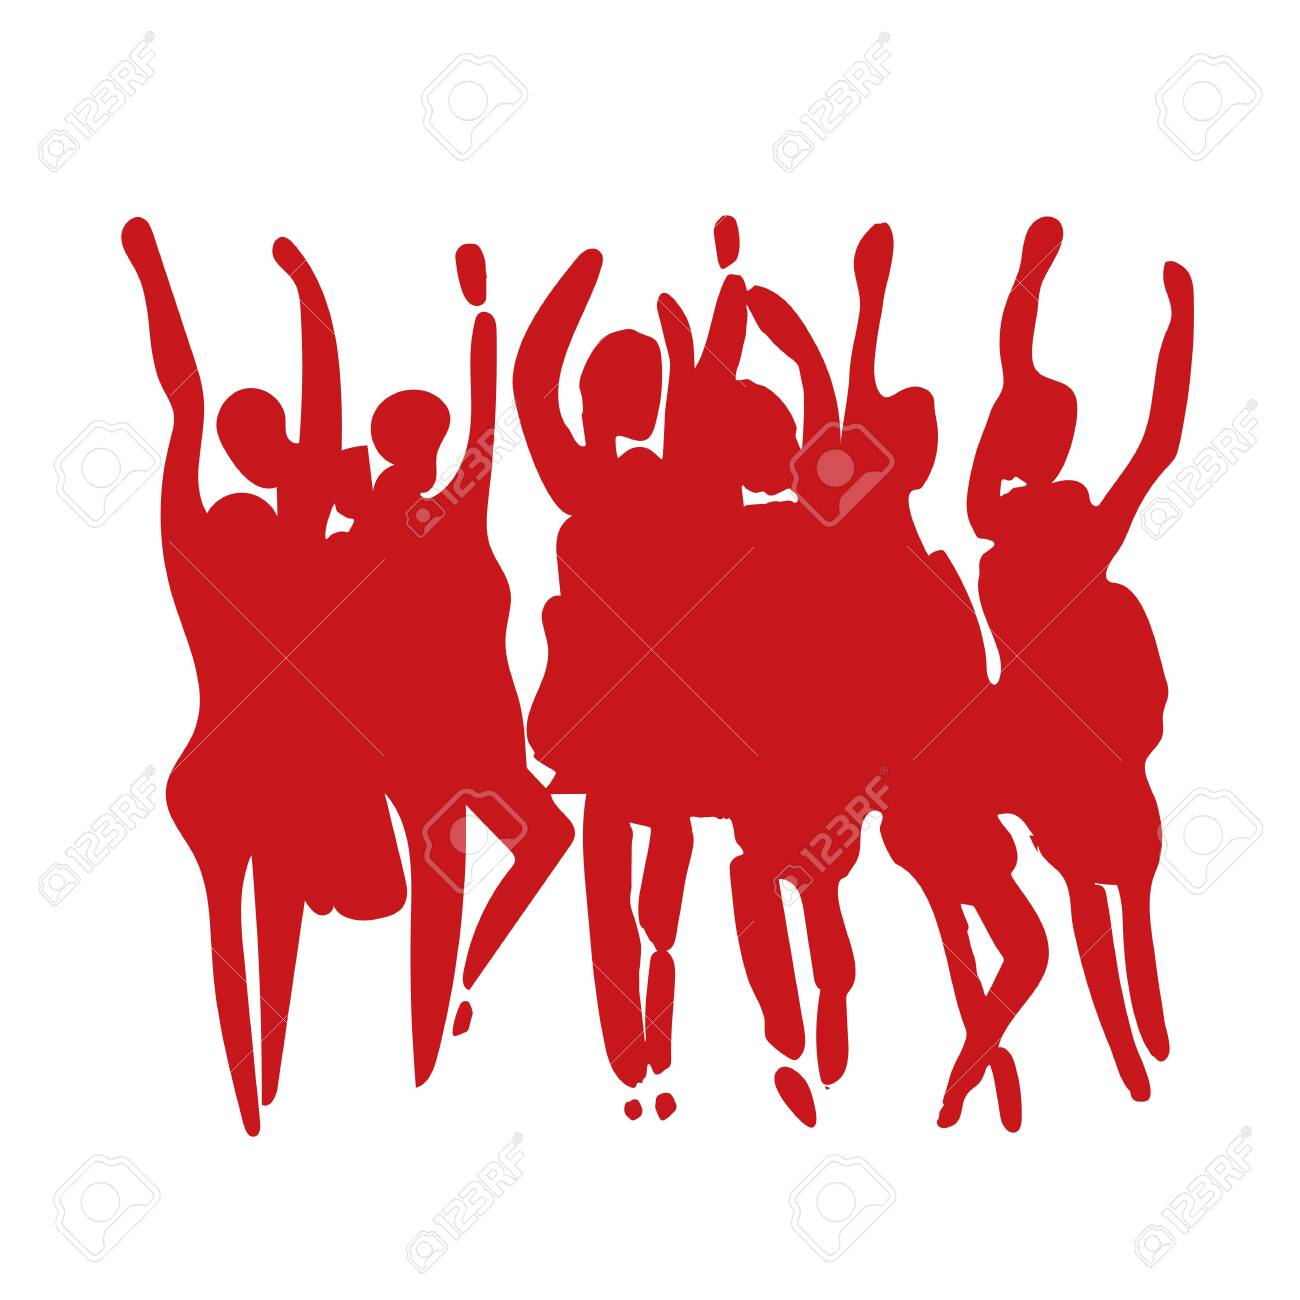 Vector - hand drawn watercolor illustration. Dancing people. People shaped watercolor stains - 142329330